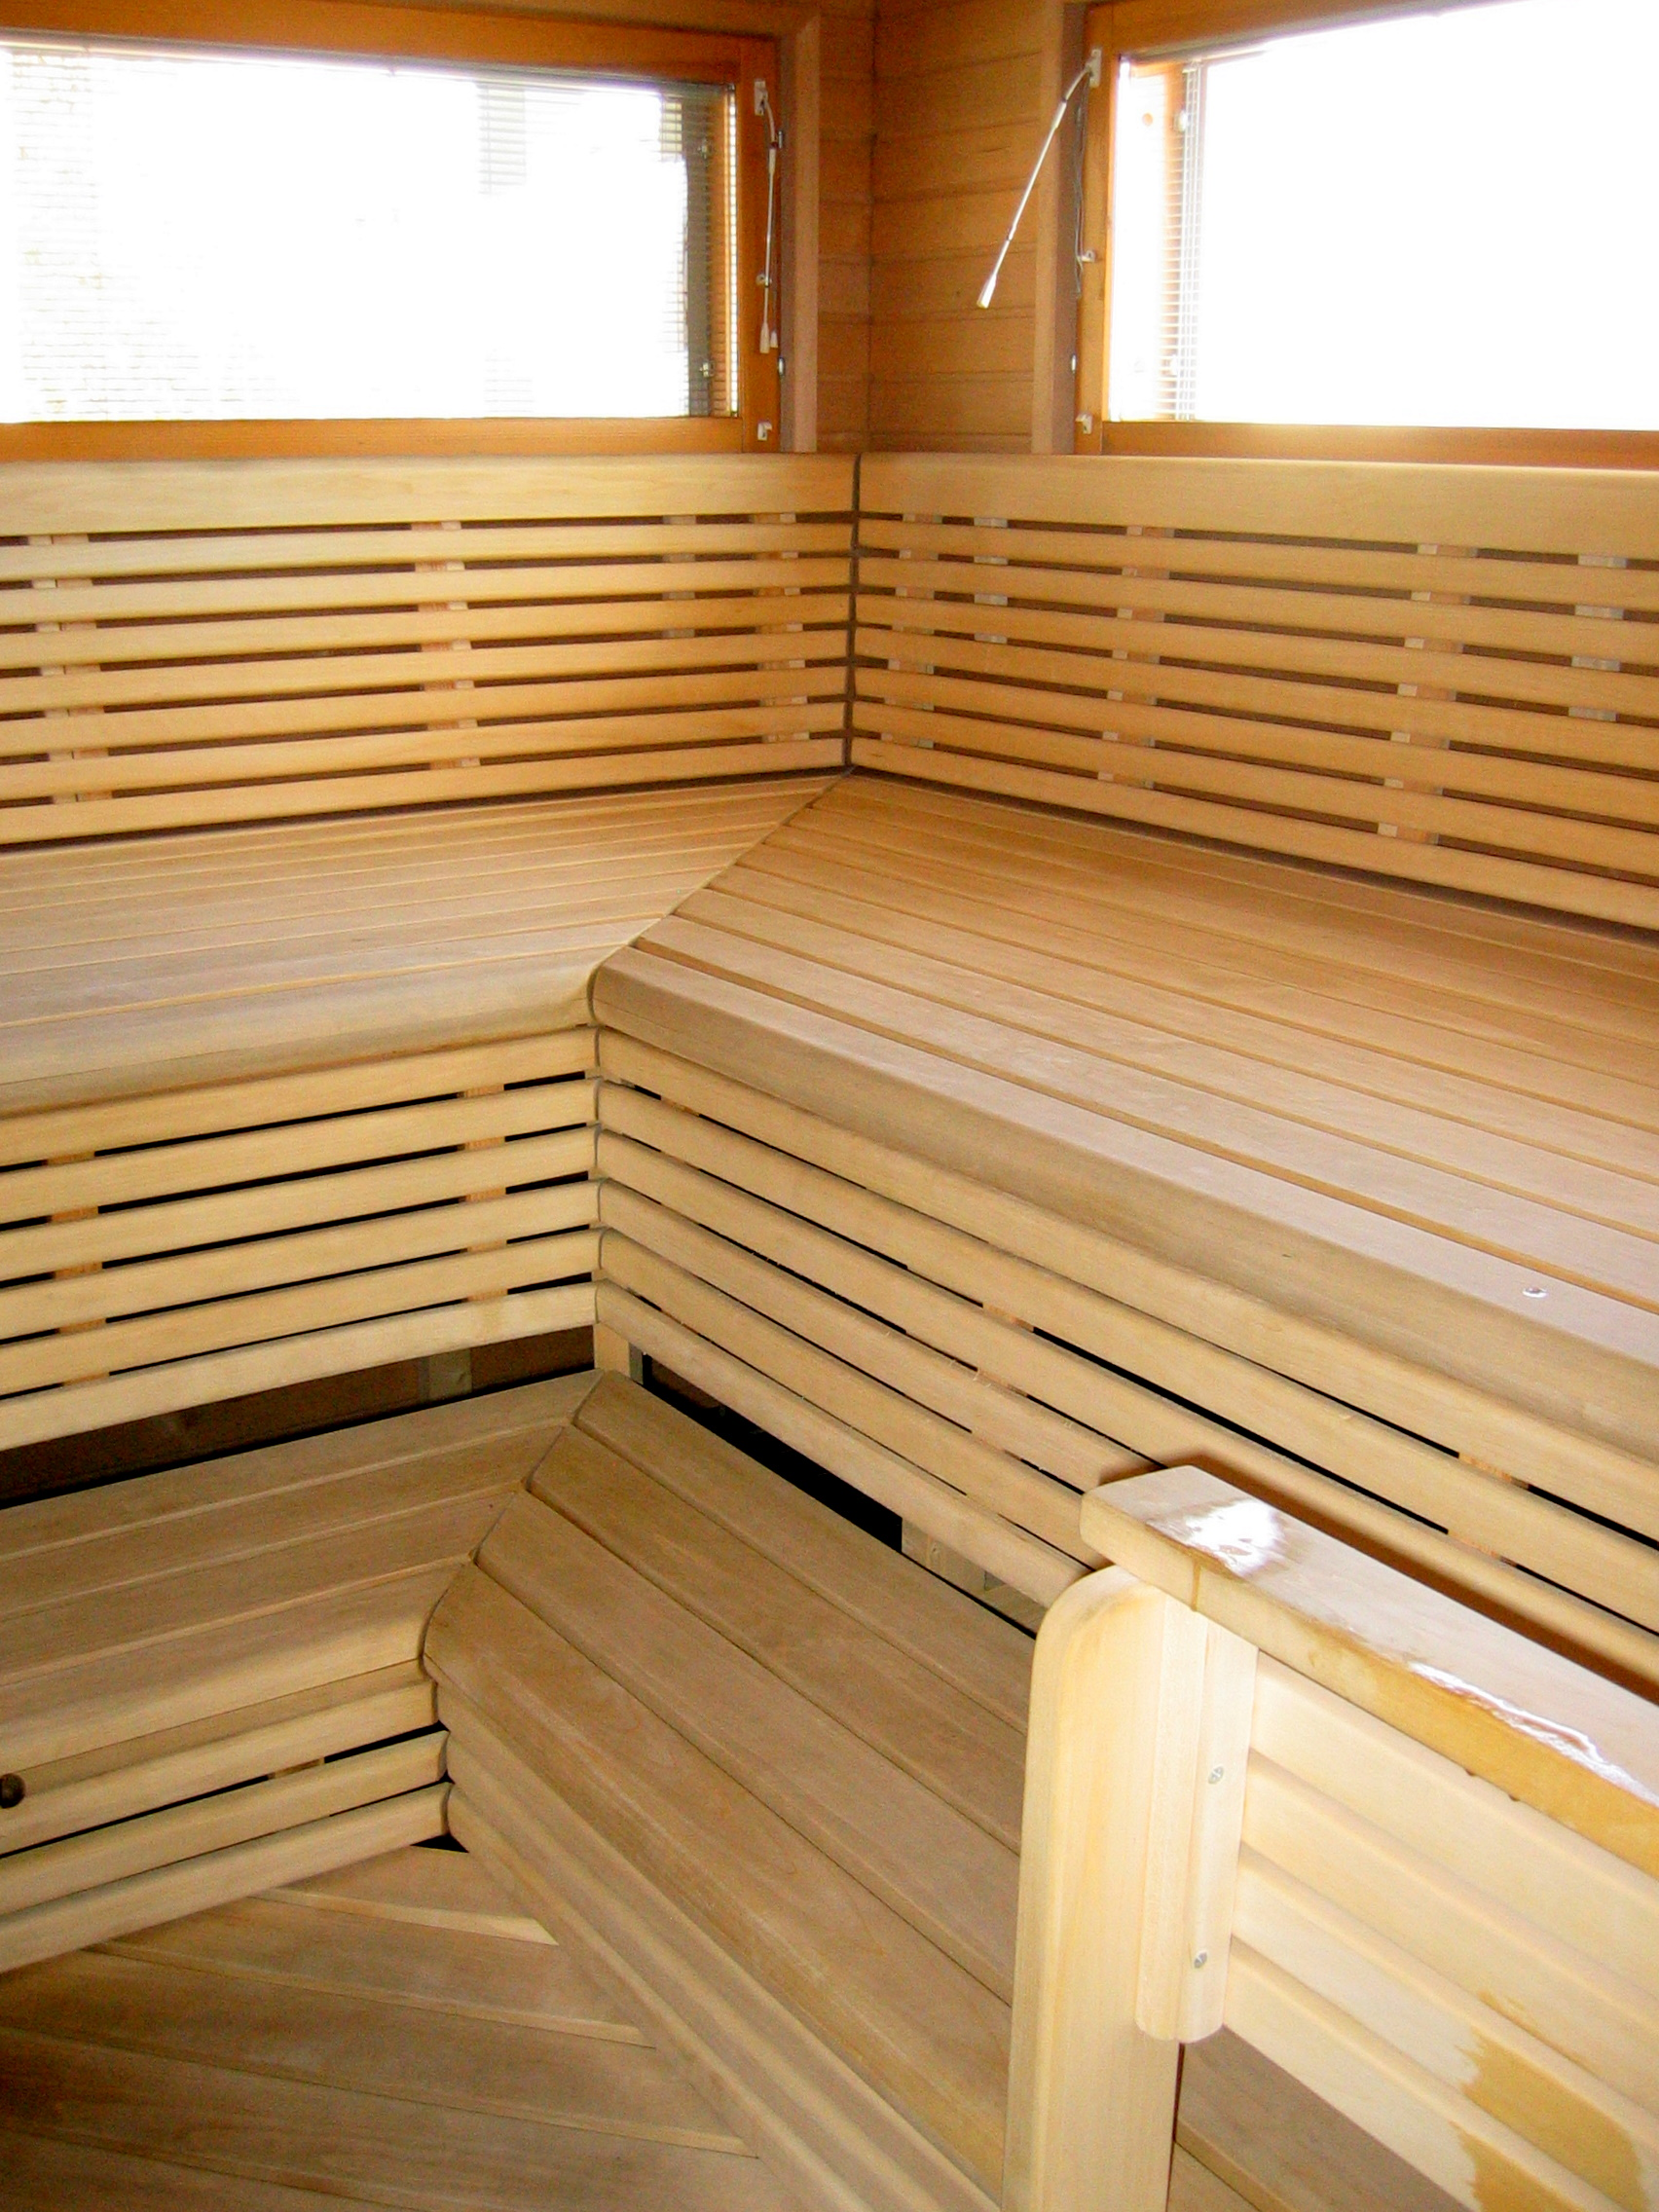 file sauna wikimedia commons. Black Bedroom Furniture Sets. Home Design Ideas